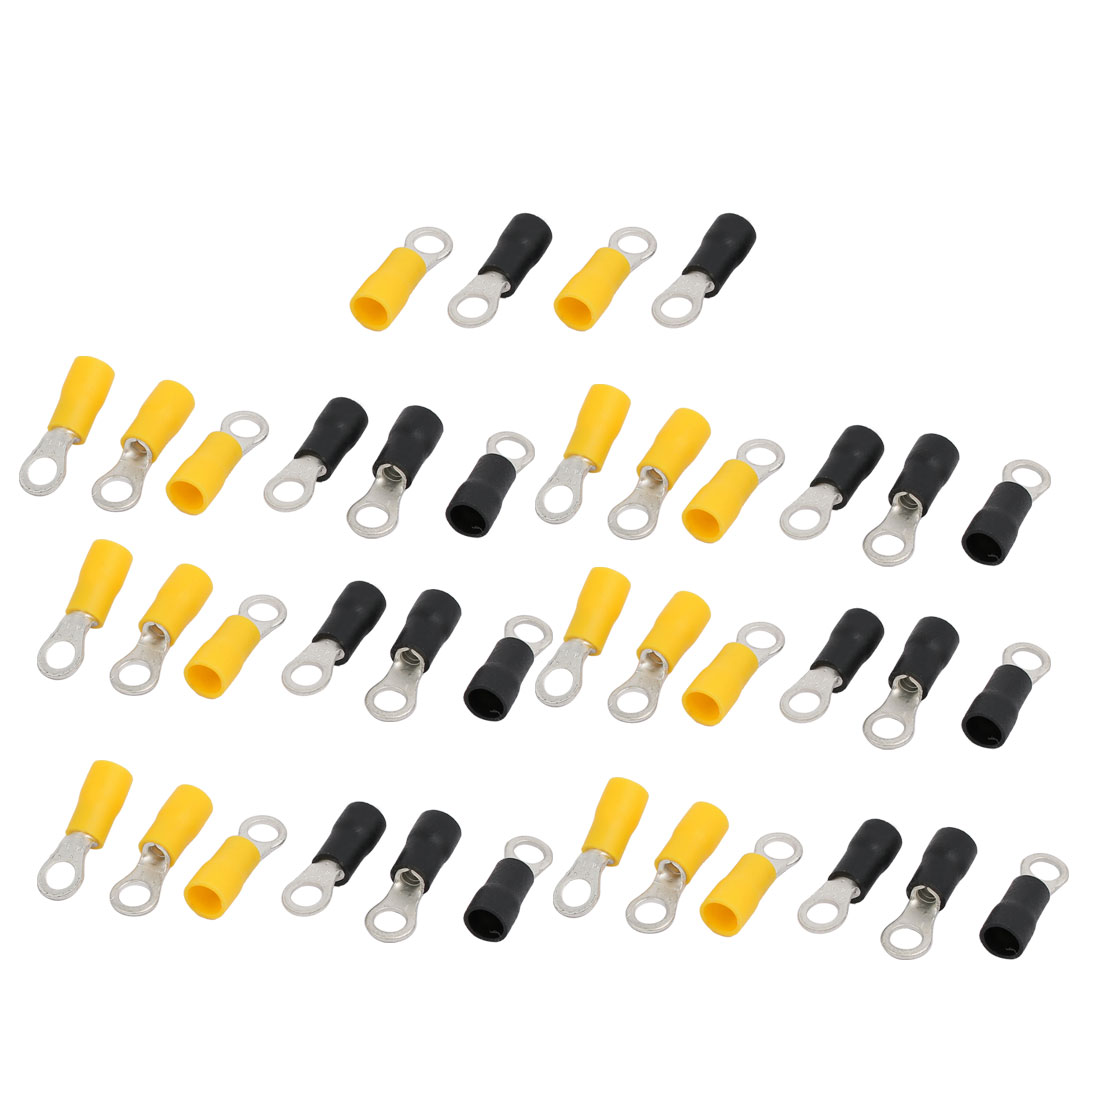 40pcs RV3.5-5 Pre Insulated Ring Crimp Terminal Yellow Black for AWG 14-12 Wire